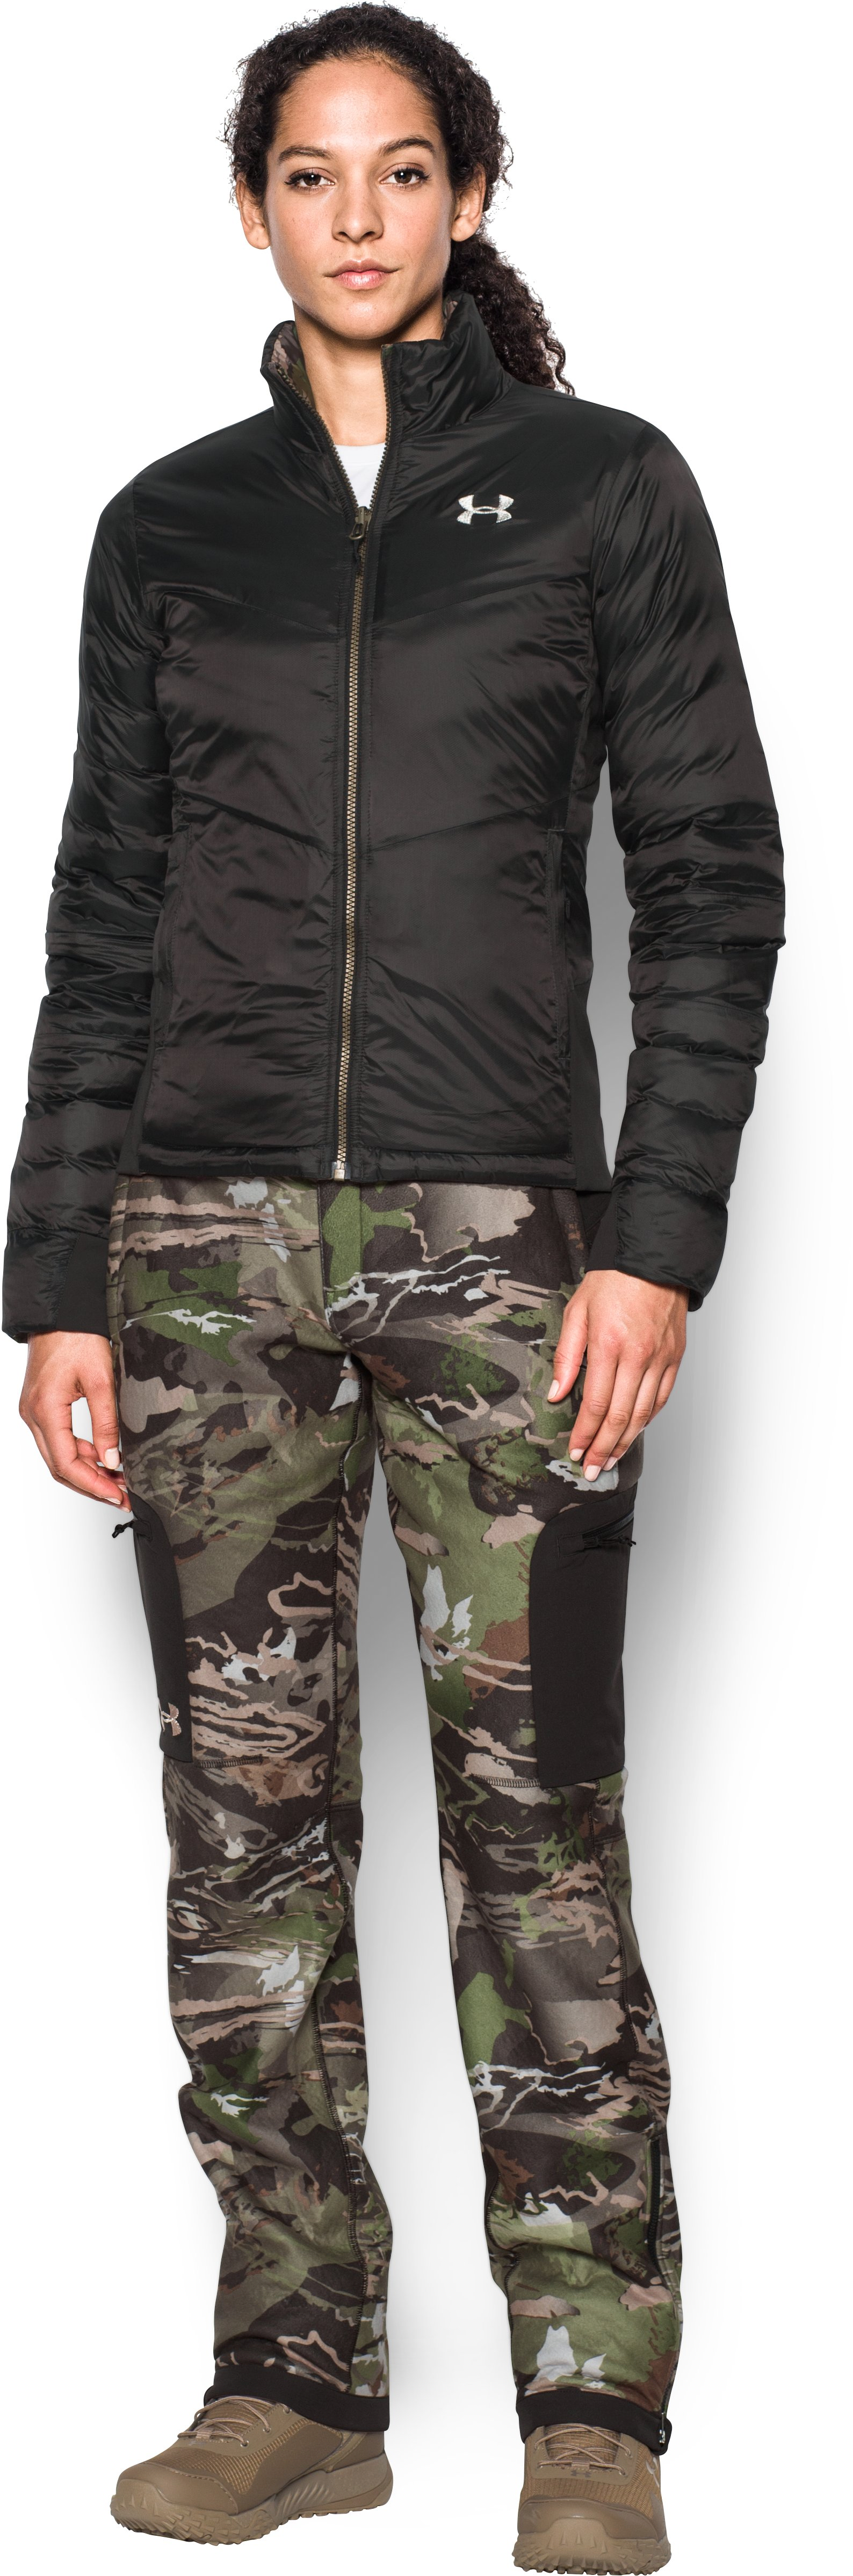 Women's UA Extreme Reversible Jacket, RIDGE REAPER® FOREST, Front